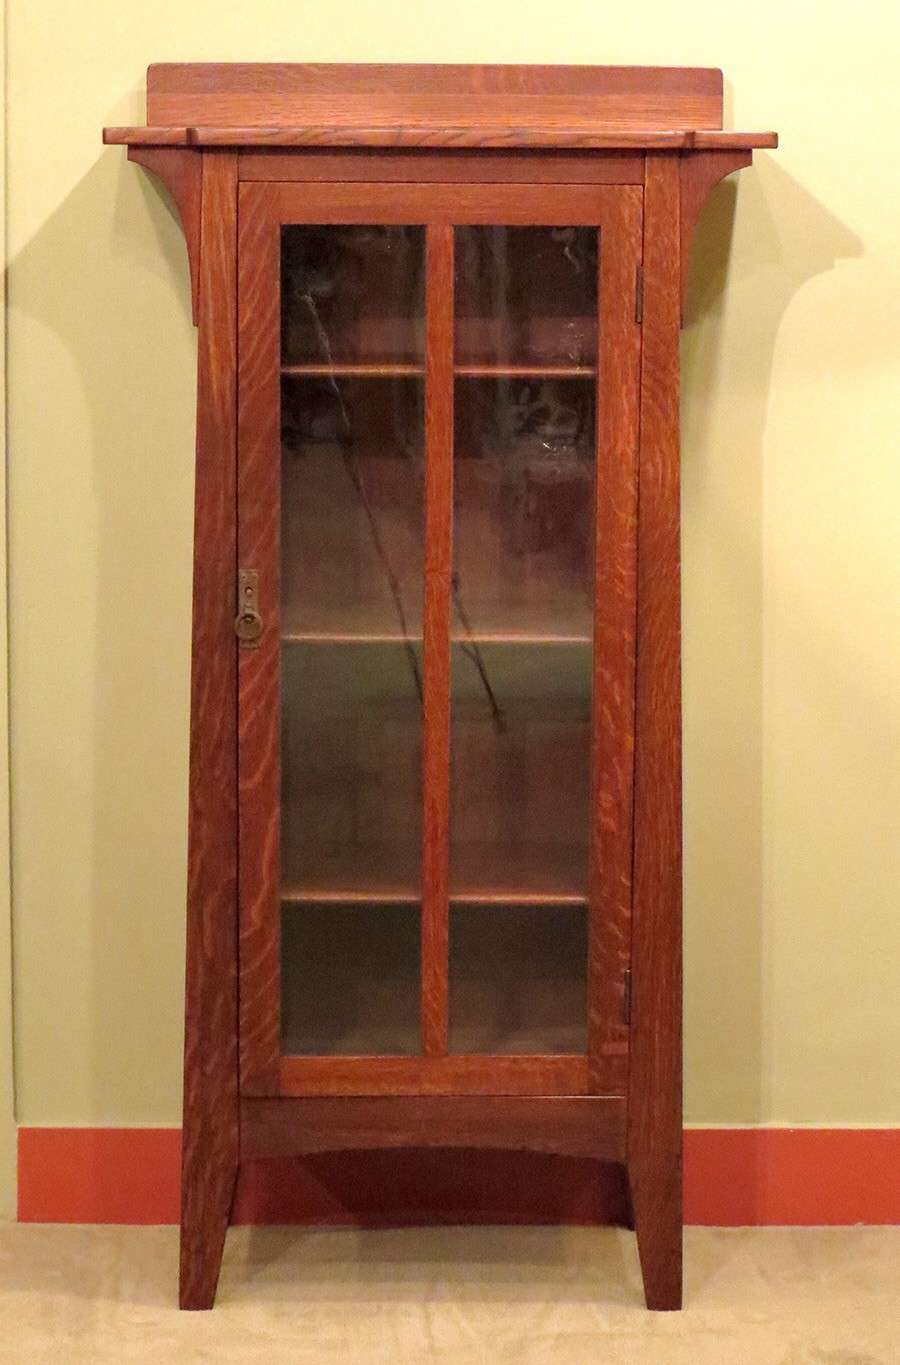 Limbert One Door Bookcase 57 Quot H X 27 5 Quot W X 14 Quot D California Historical Design